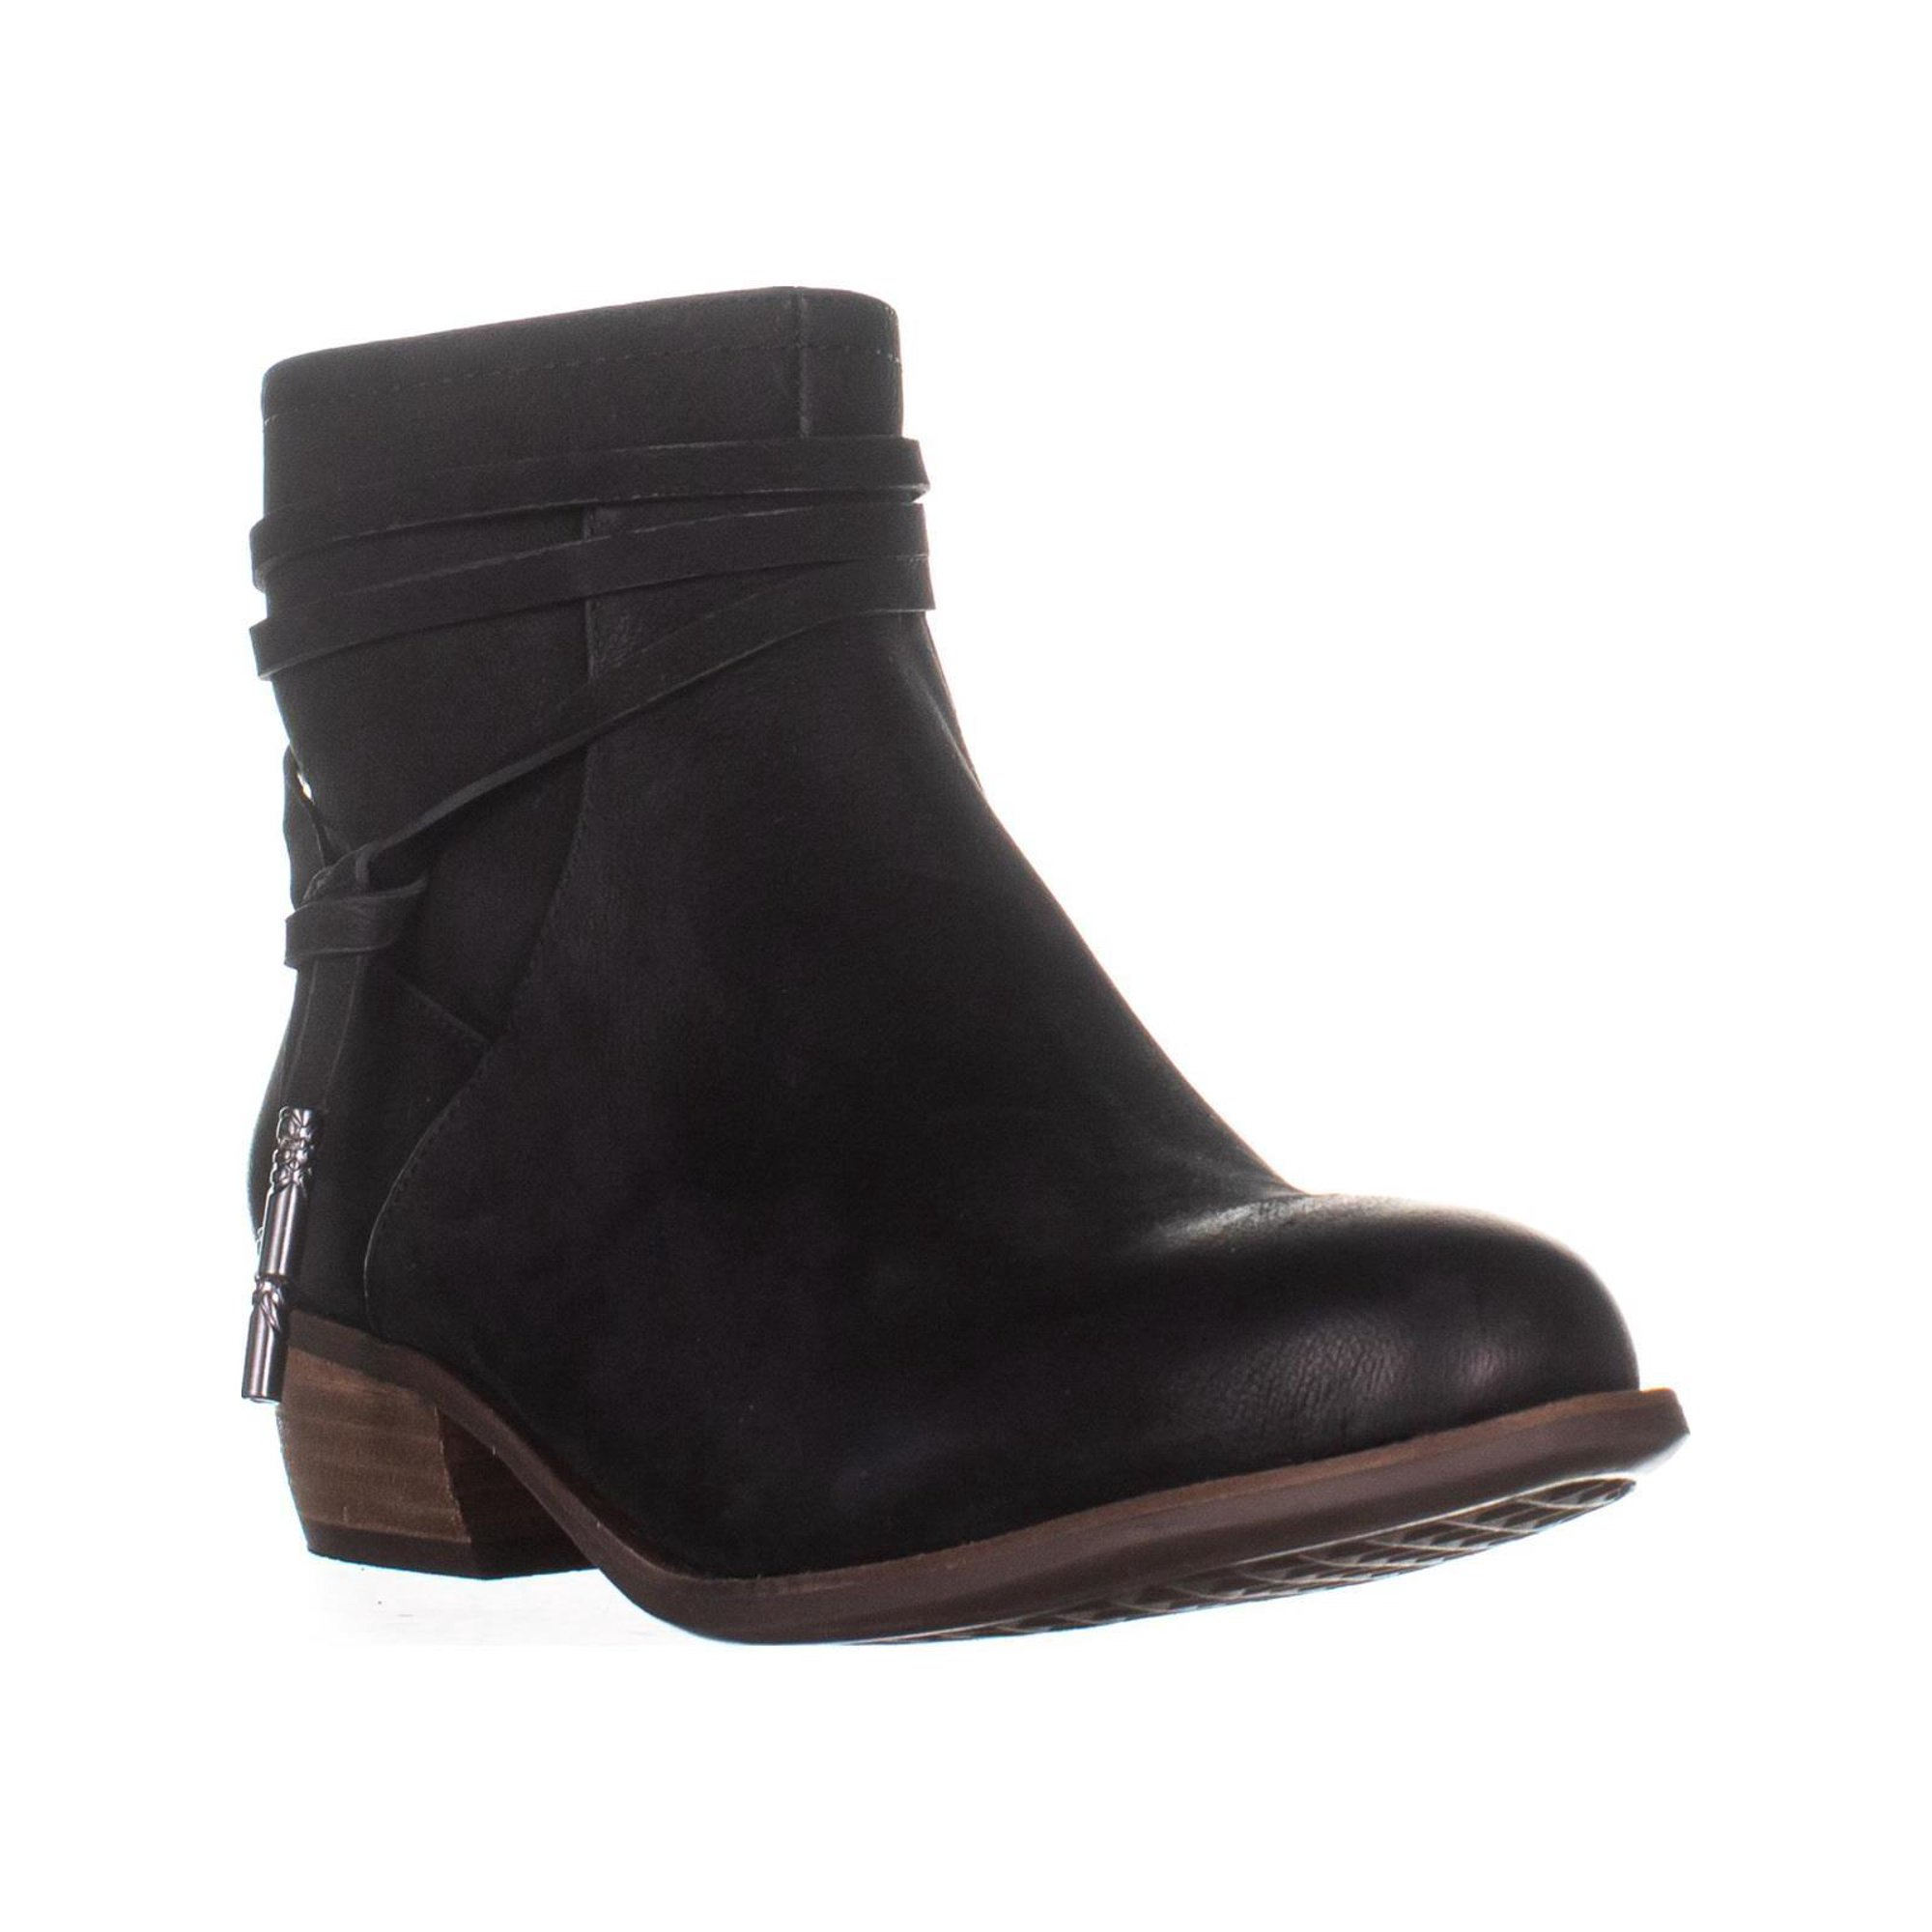 comfort ankle bottes canada